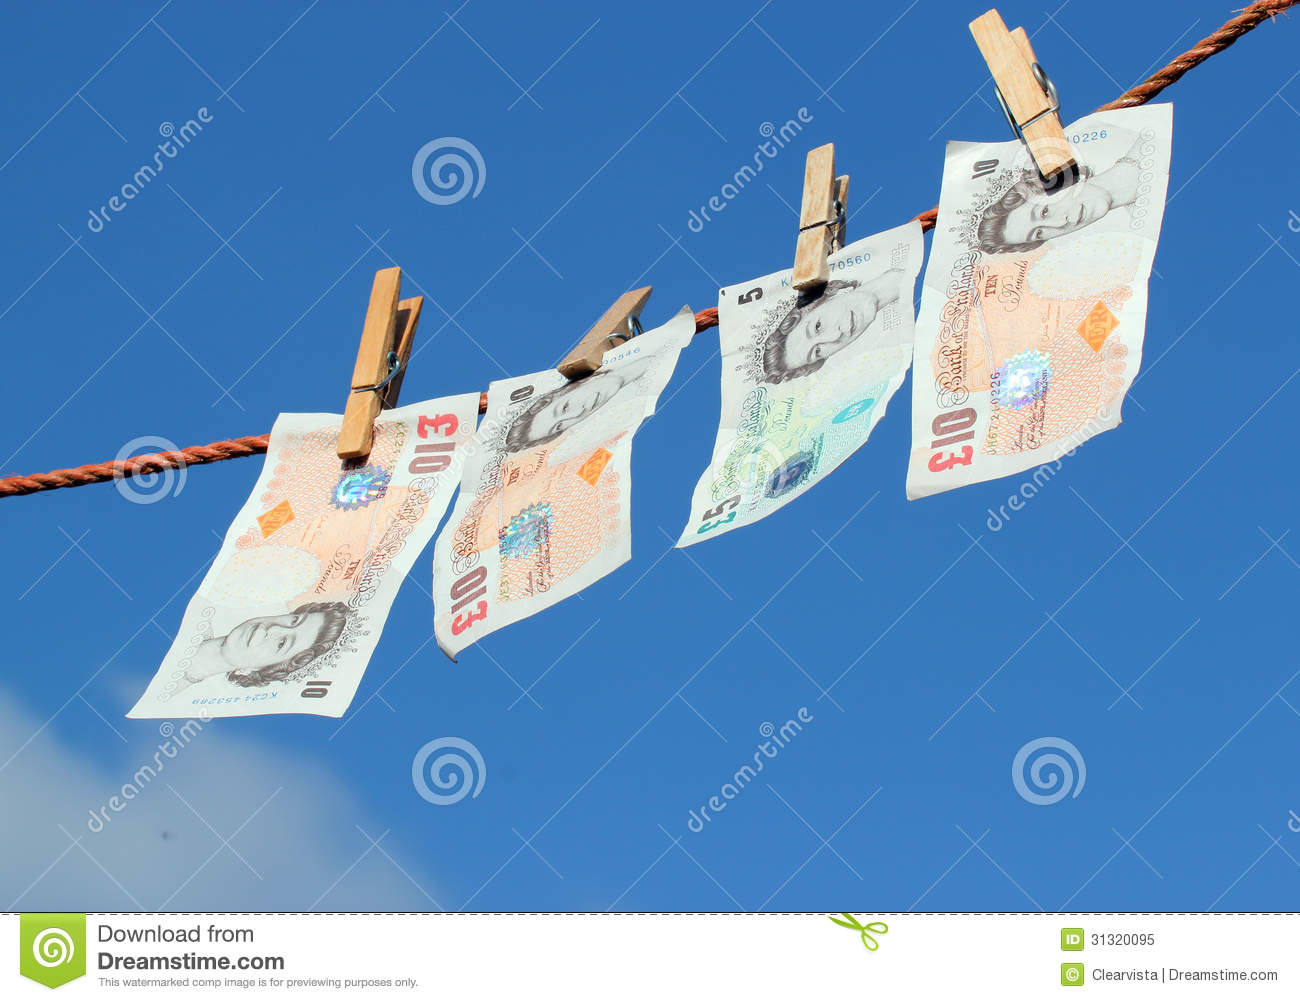 Money hanging on a washing line, possibly money laundering.